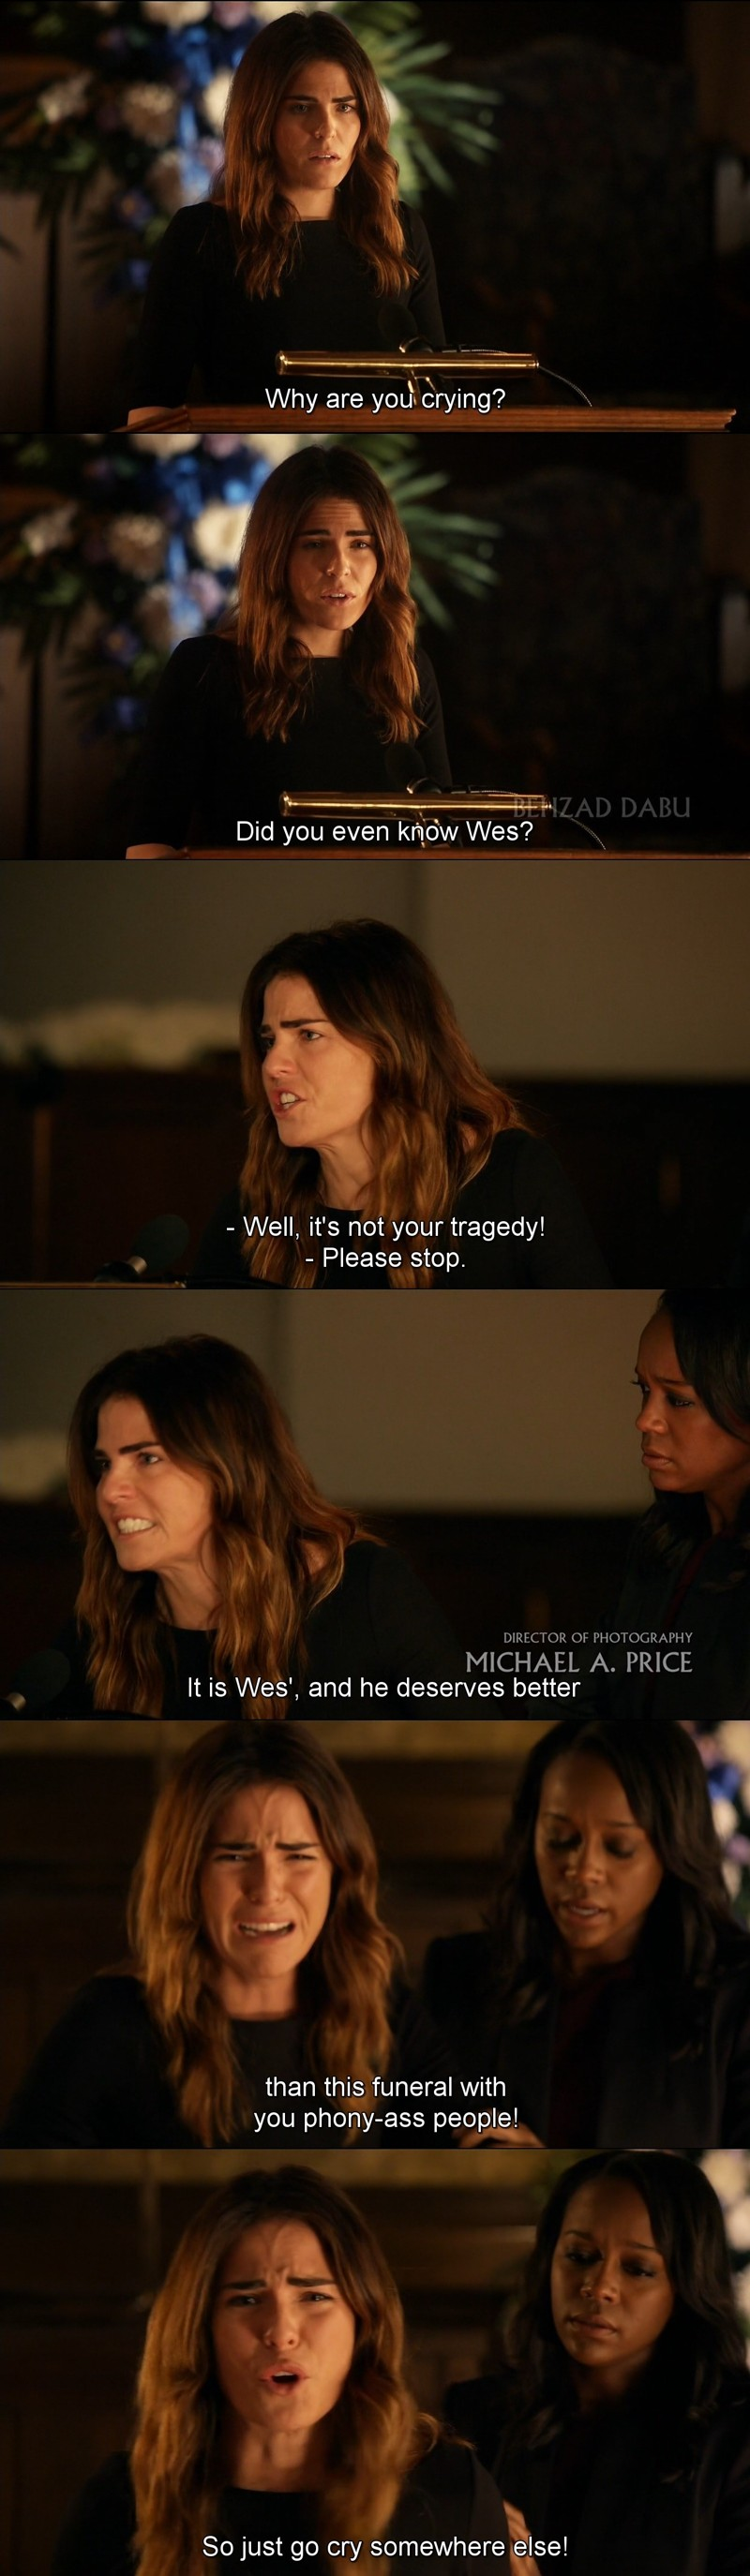 Wow !!! Karla Souza totally slayed in this scene!!!!!!! I think she deserves more recognition than she has!!!!!